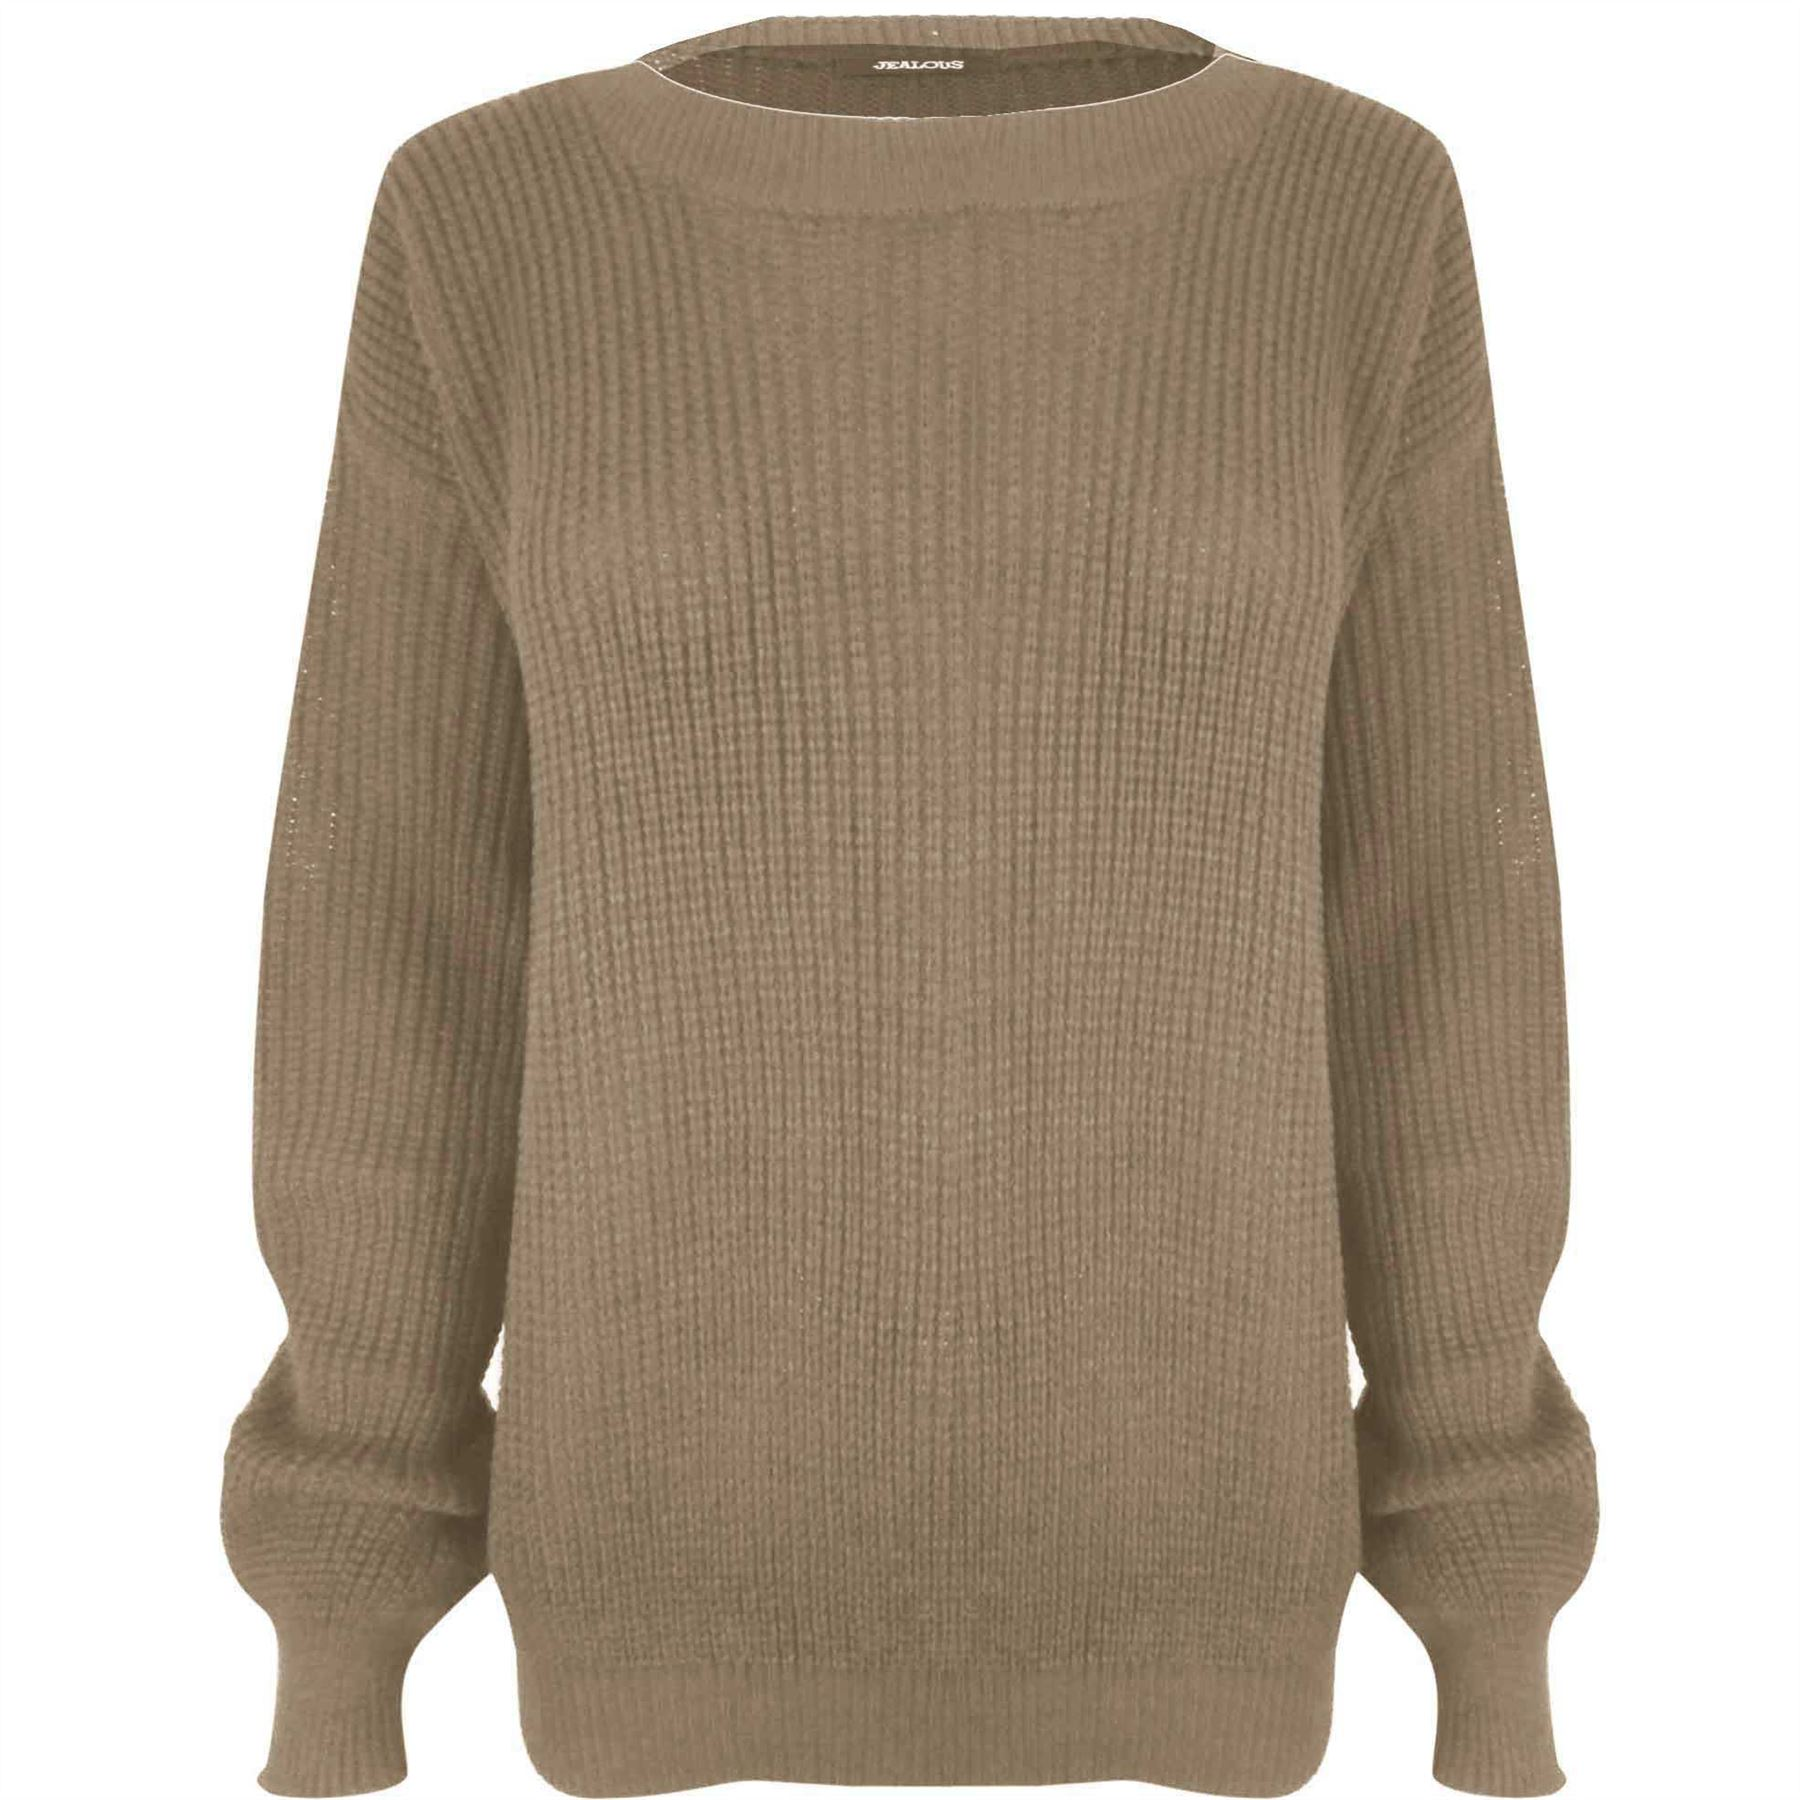 Womens Plain Chunky Knitted Sweater Top Ladies Baggy Oversized ...